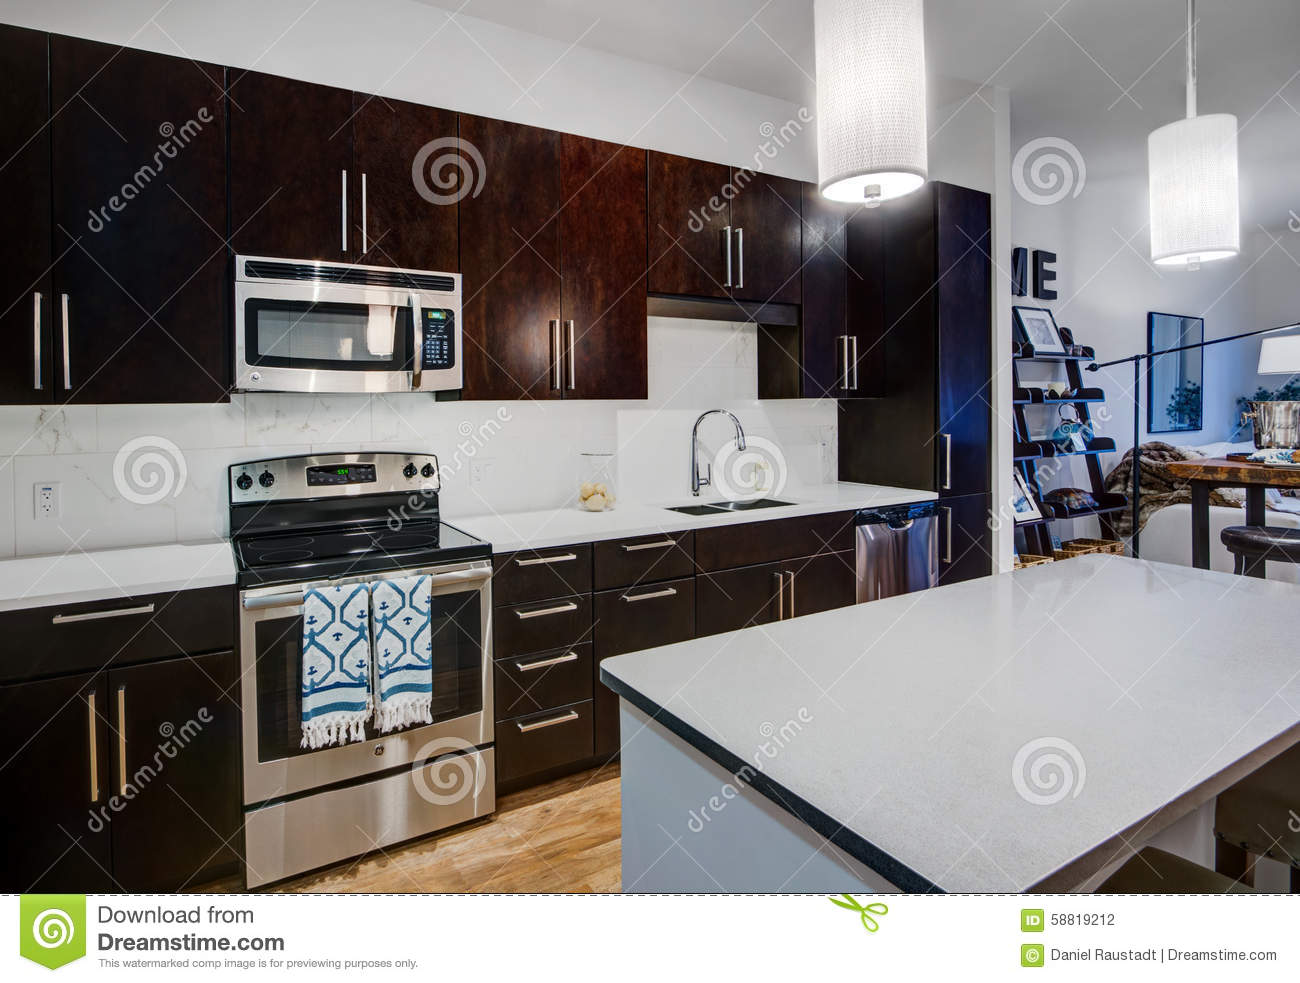 Cuisine moderne d 39 appartement photo stock image 58819212 - Couleur appartement moderne ...